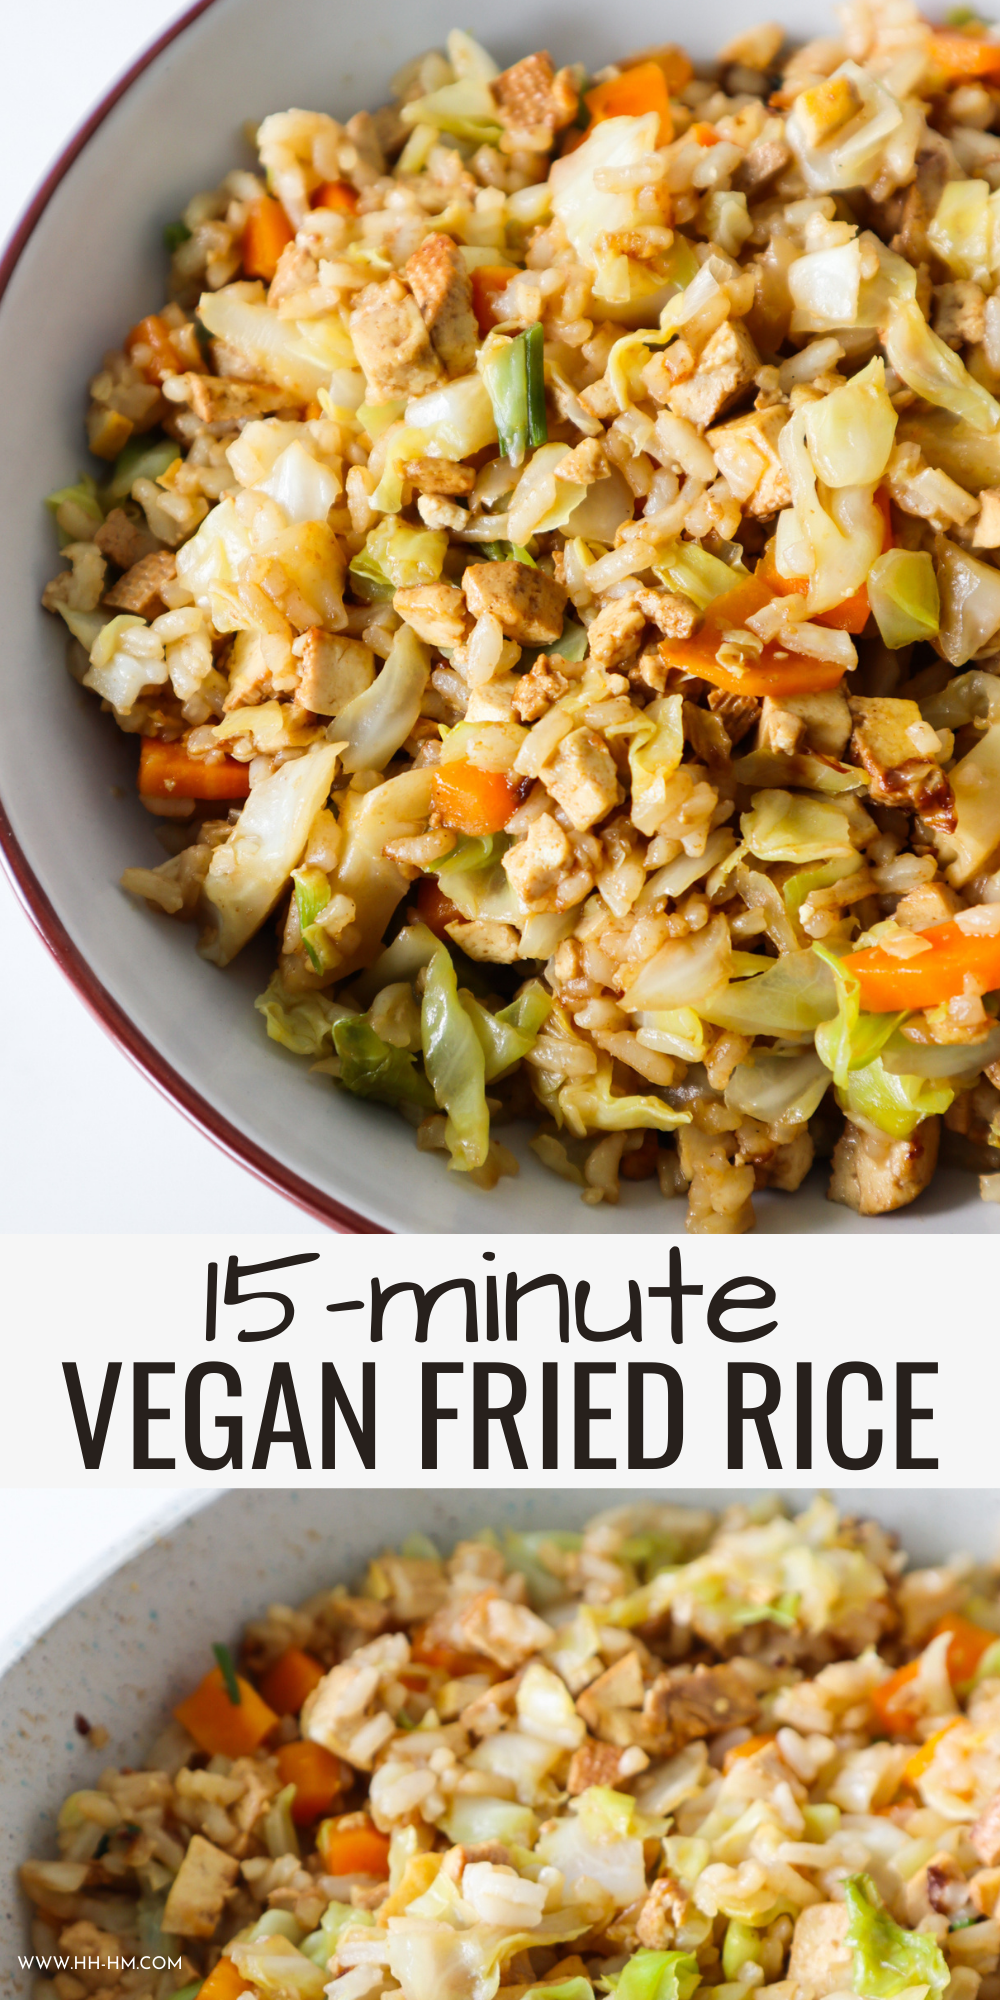 Make this easy vegan fried rice with tofu and vegetables! This quick meatless meal is a great healthy vegan dinner idea and perfect for weeknights!